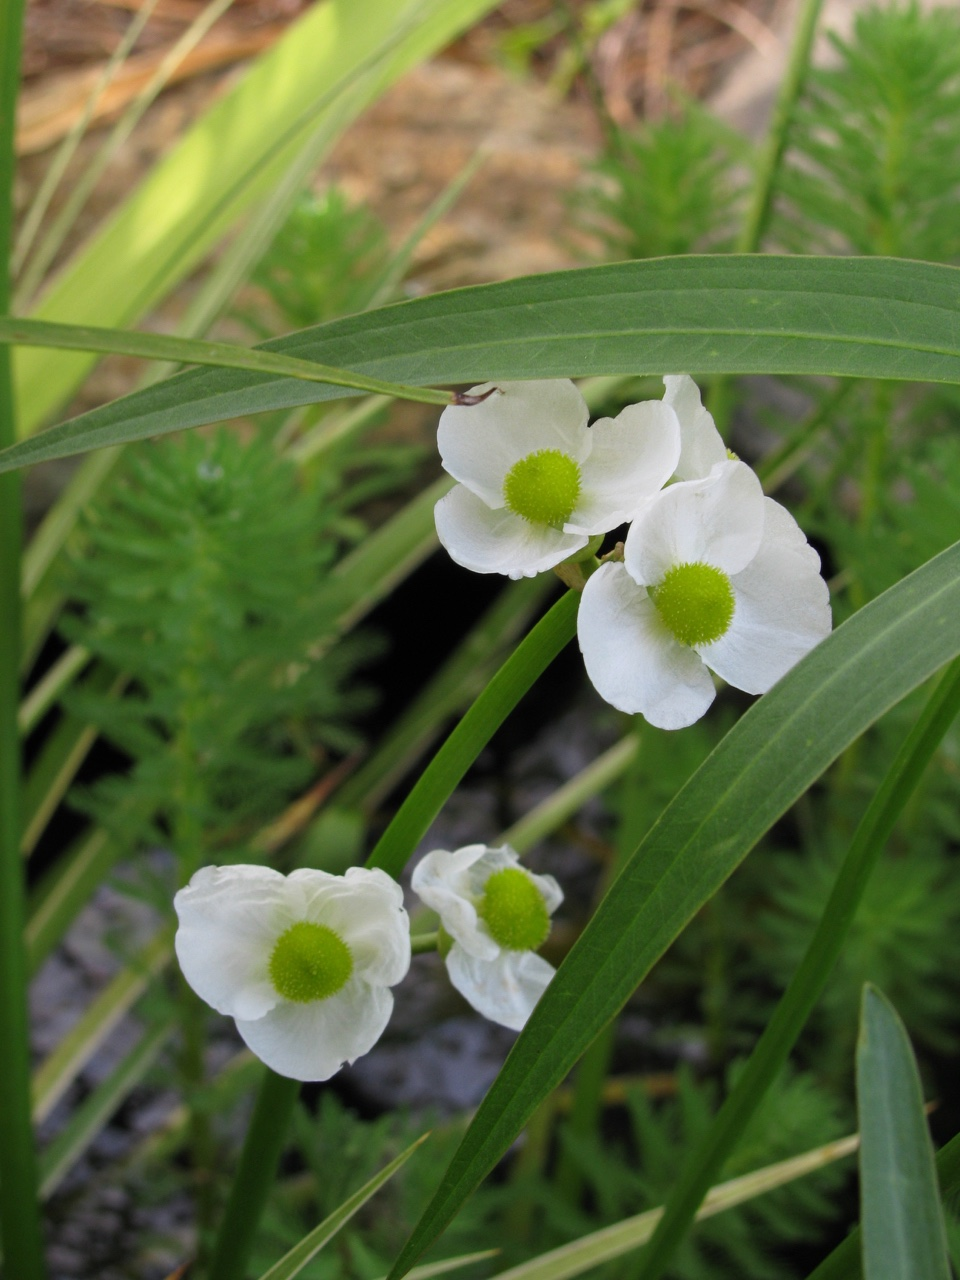 The Scientific Name is Sagittaria latifolia. You will likely hear them called Broadleaf Arrowhead, Duck-potato. This picture shows the Close-up of inflorescence of Sagittaria latifolia